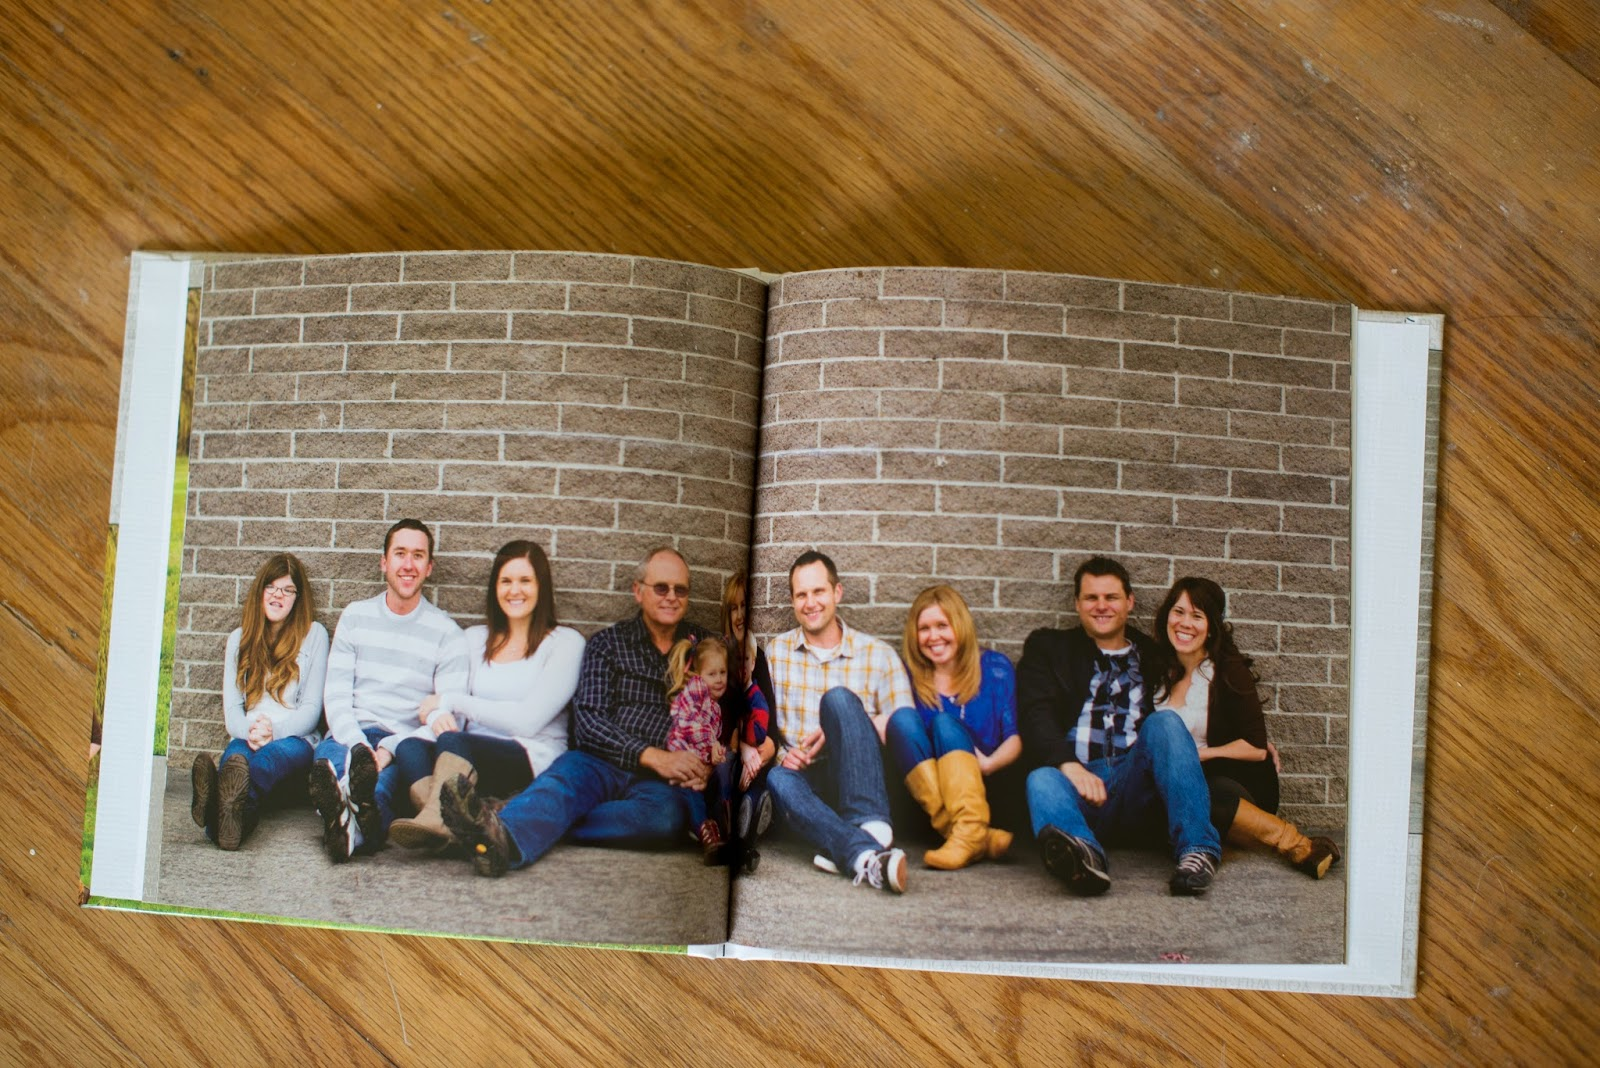 Family Photo Session Photo Book--create a photo book from your professional family photo session to be able to look back on for years to come! When you change out the photos in frames around the house, you will still have this book to flip through!